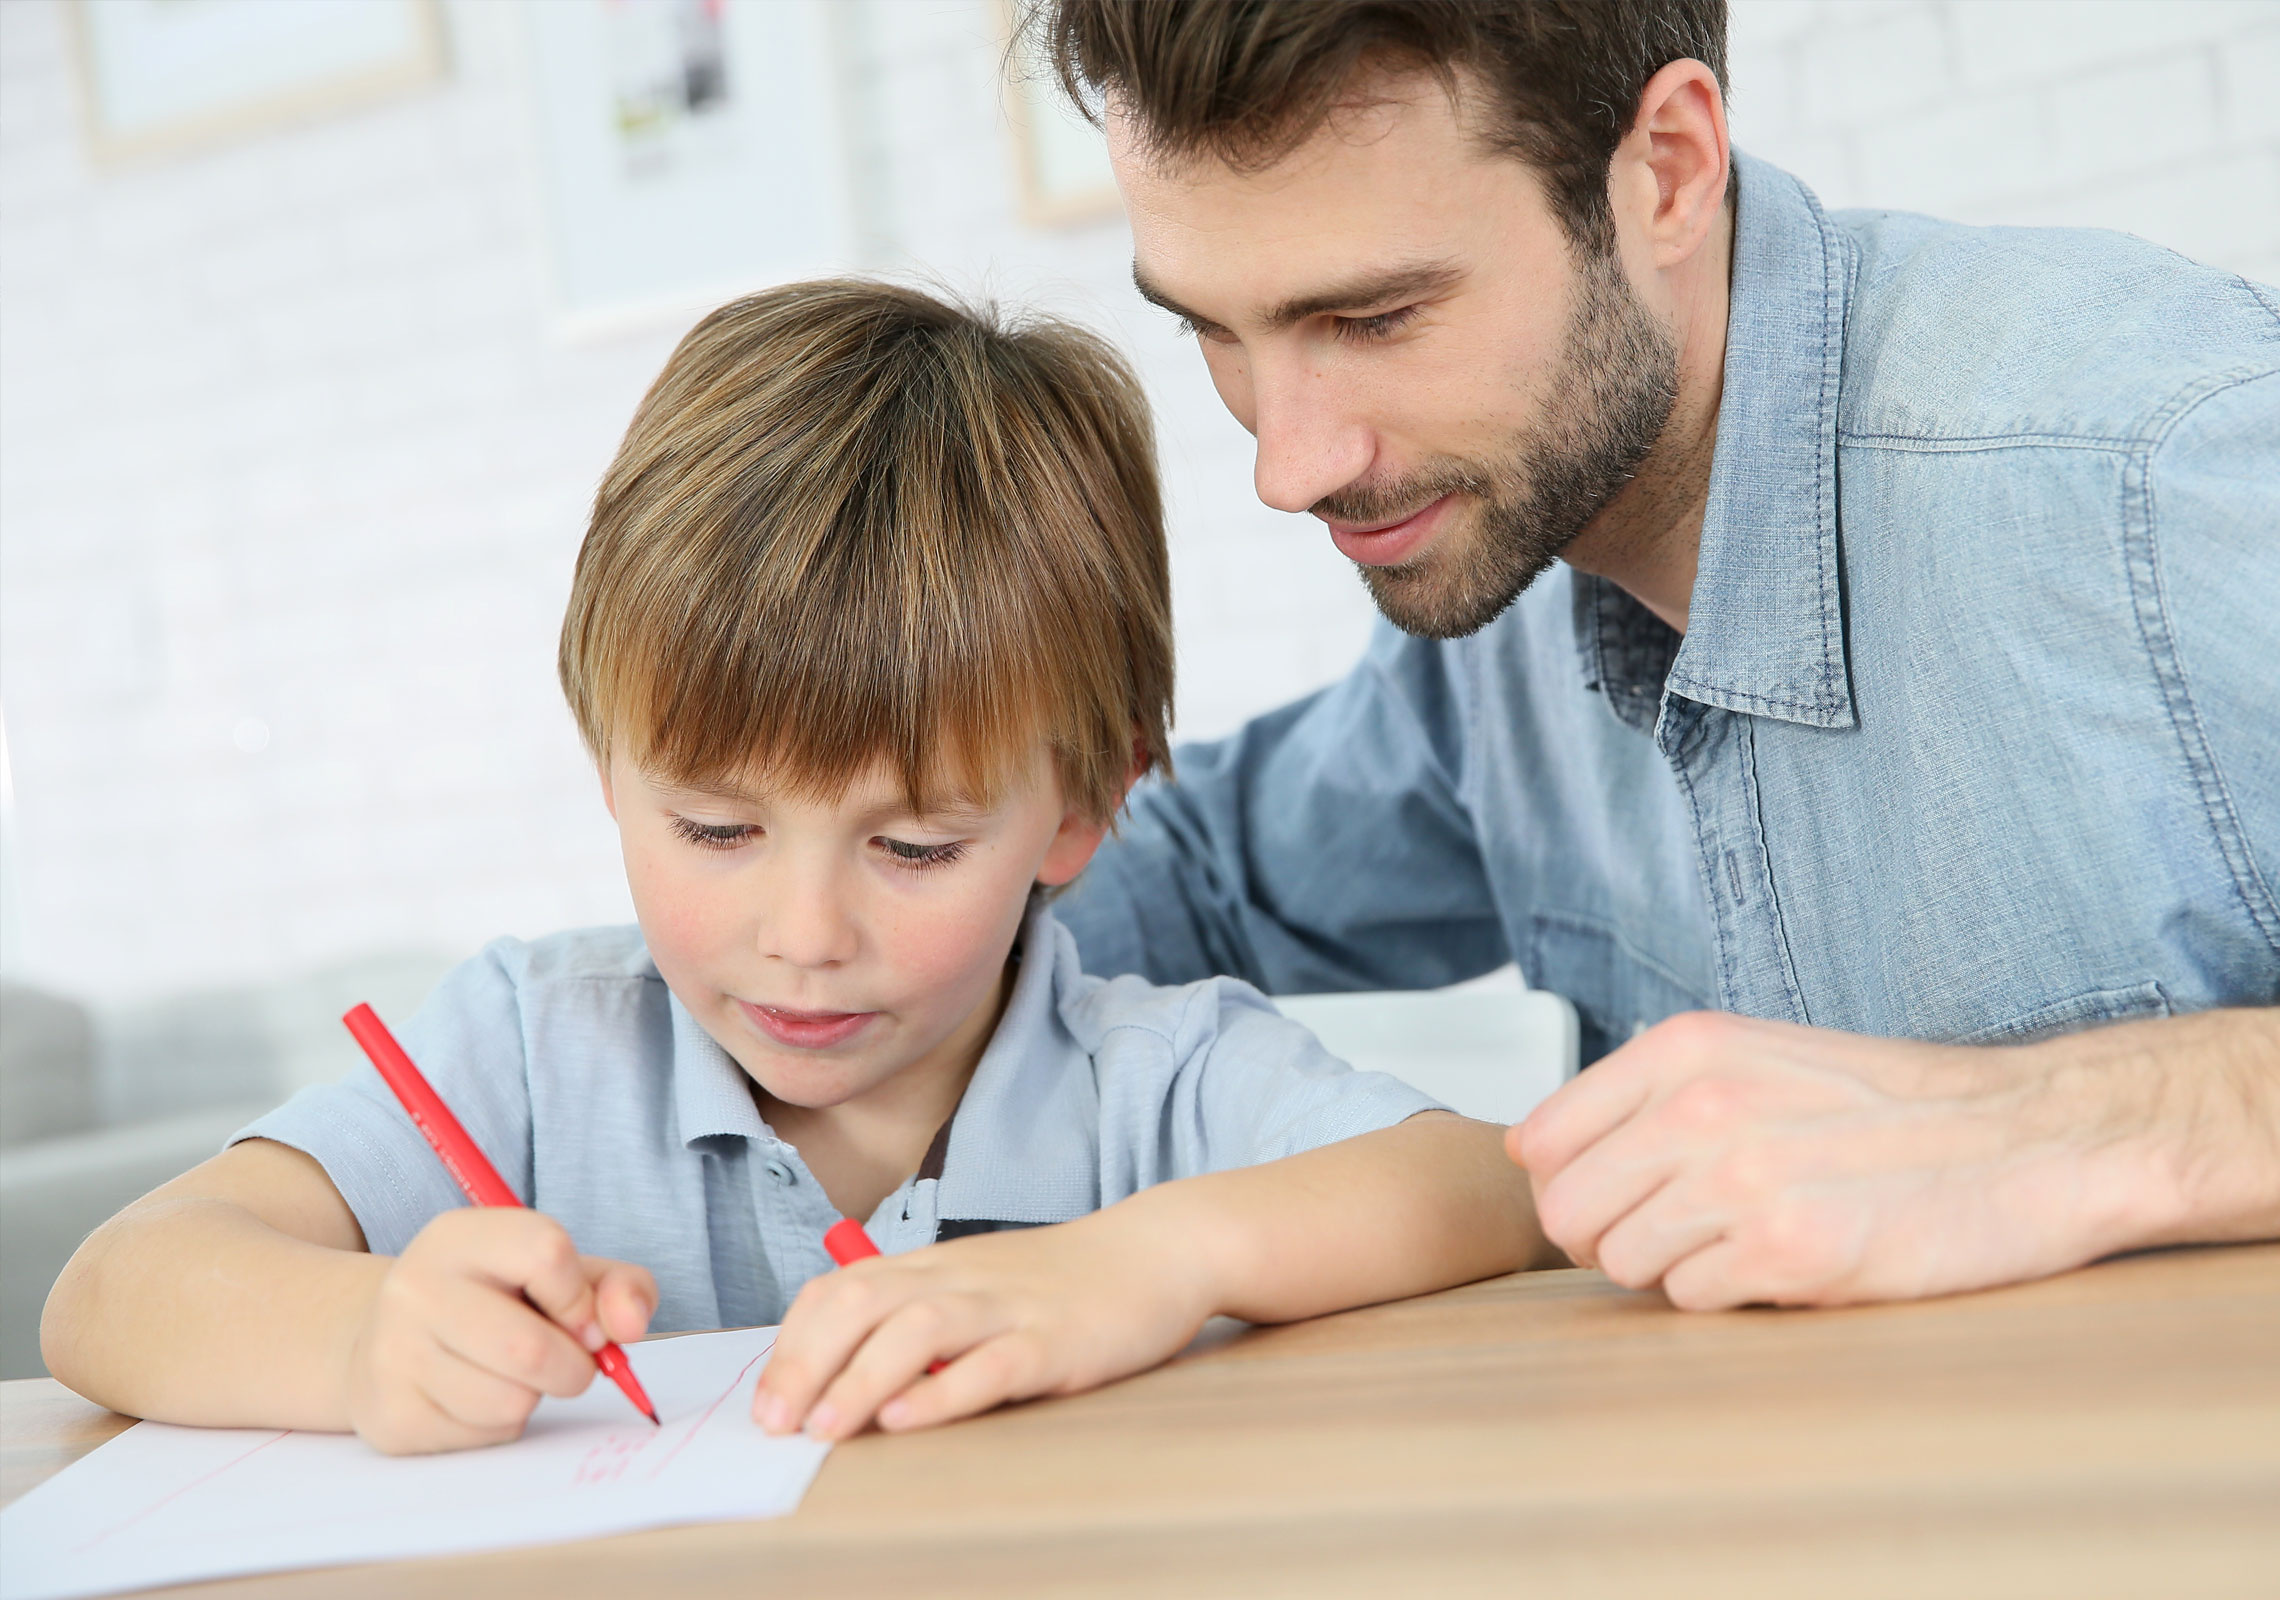 online homework help for kids Need help with homework with brainfuse, you can connect with an online tutor who can help you with your homework be sure to have your library barcode ready and mention that you are a new york state student, and they will put you through to a common core-trained tutor.